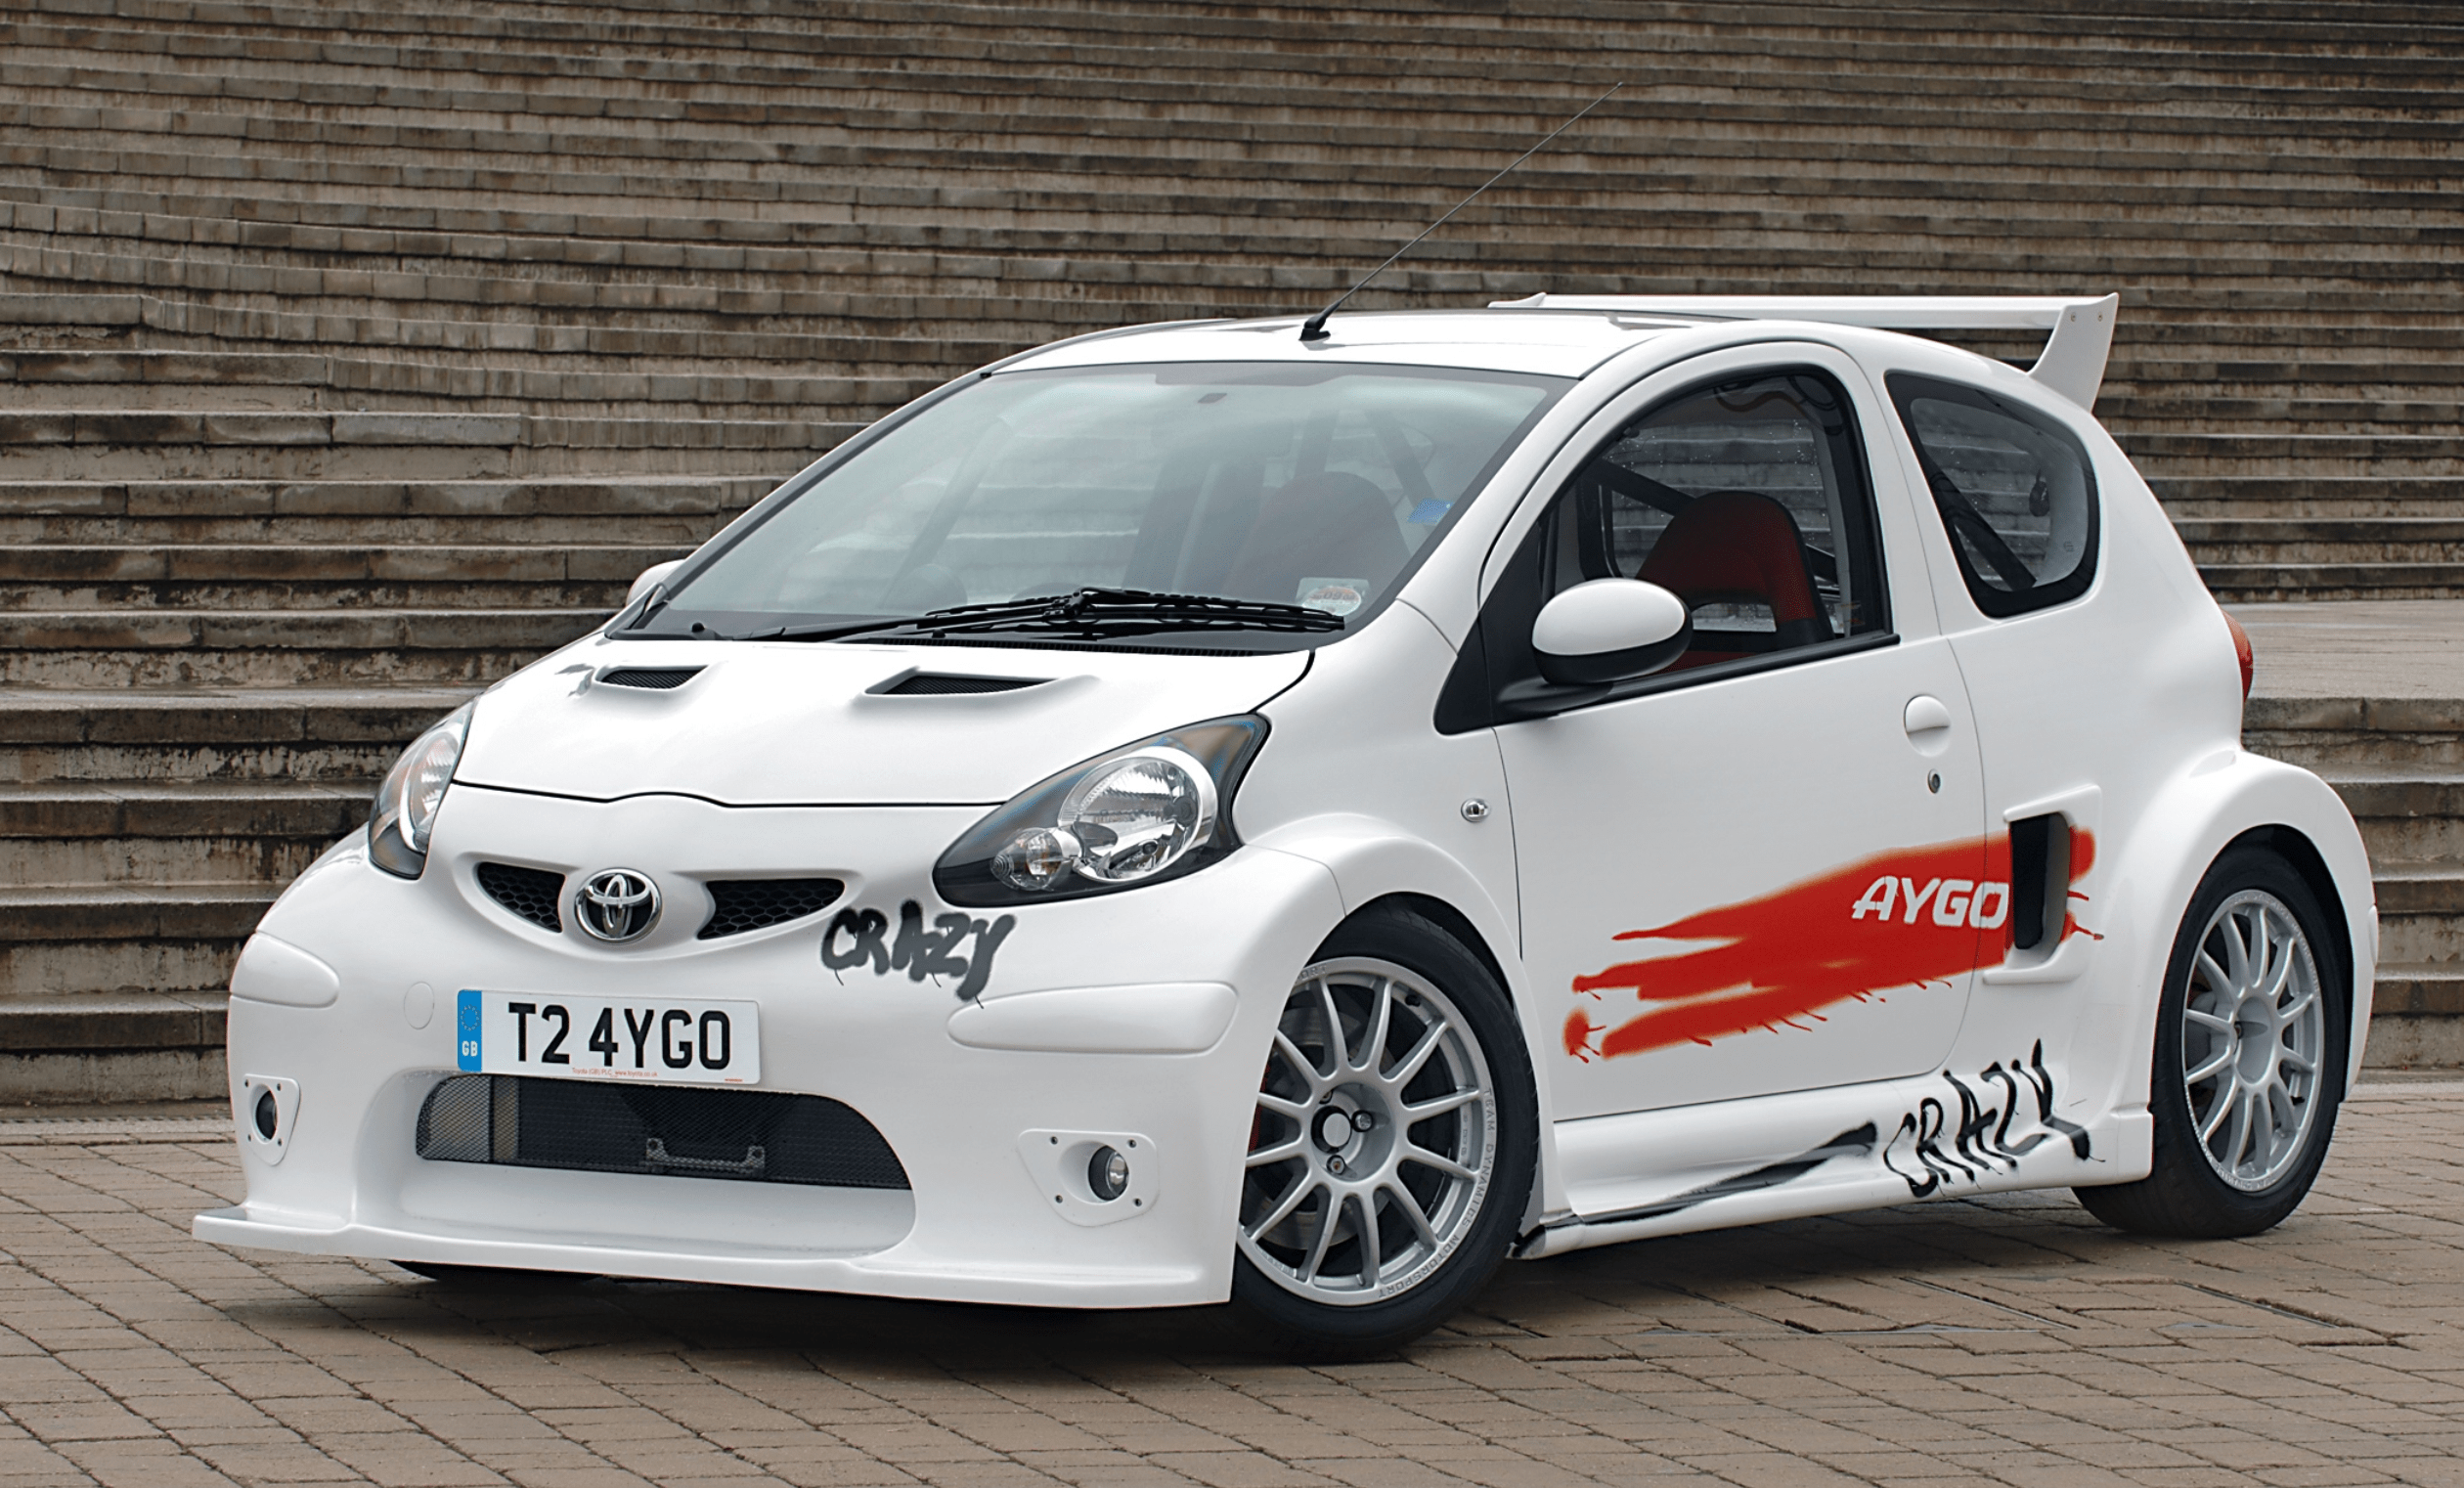 Toyota Aygo with a sports kit and spray paint graffiti saying Crazy and Aygo